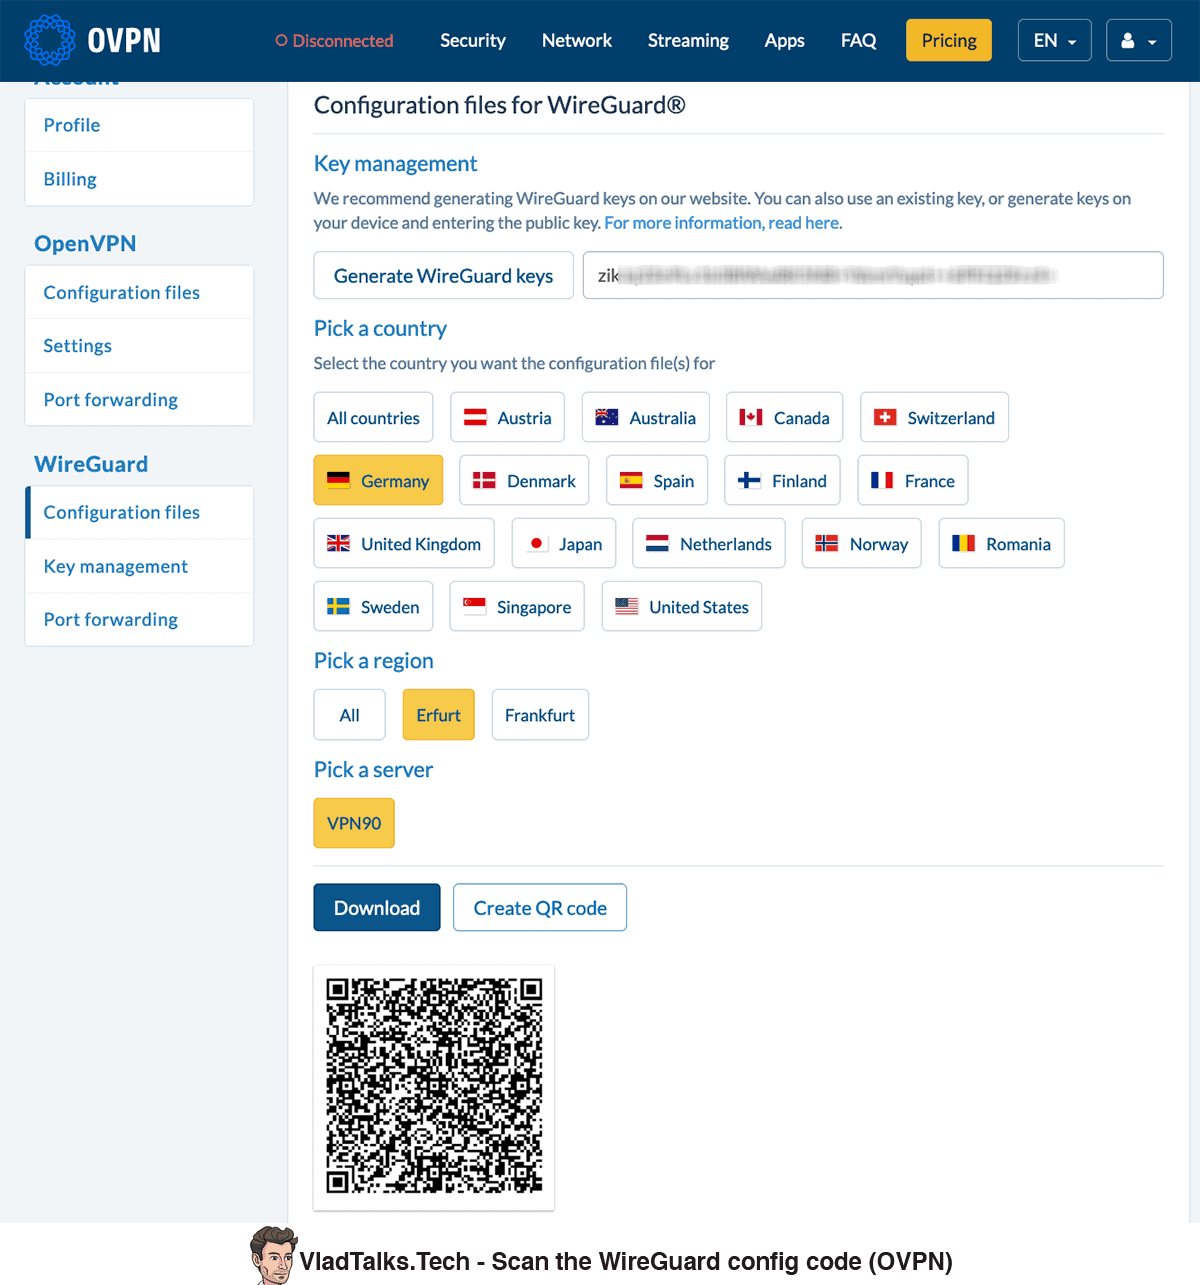 Scan the WireGuard config code (OVPN)